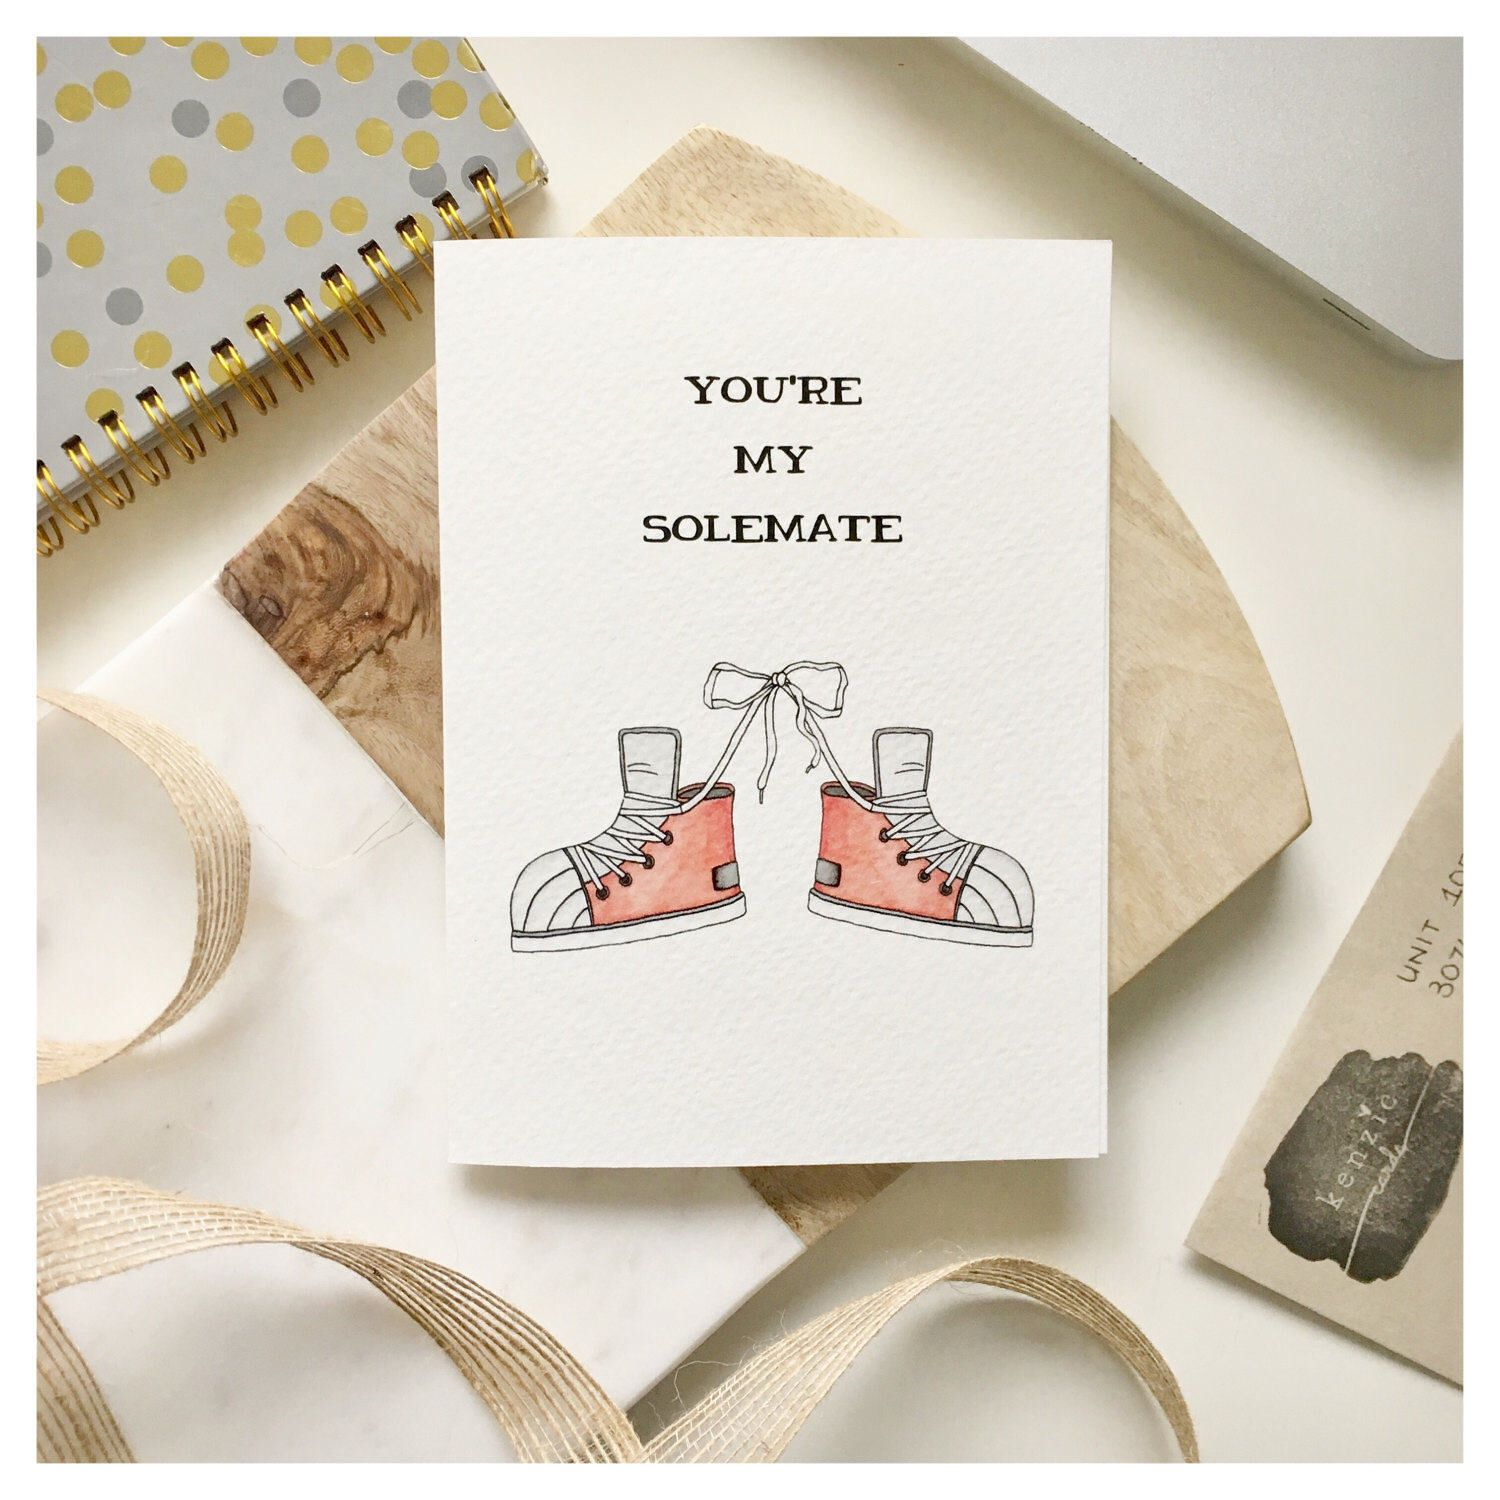 Soulmate card love card funny love card anniversary card funny s o l e m a t e s punny greeting card love card valentines day card anniversary card kristyandbryce Images